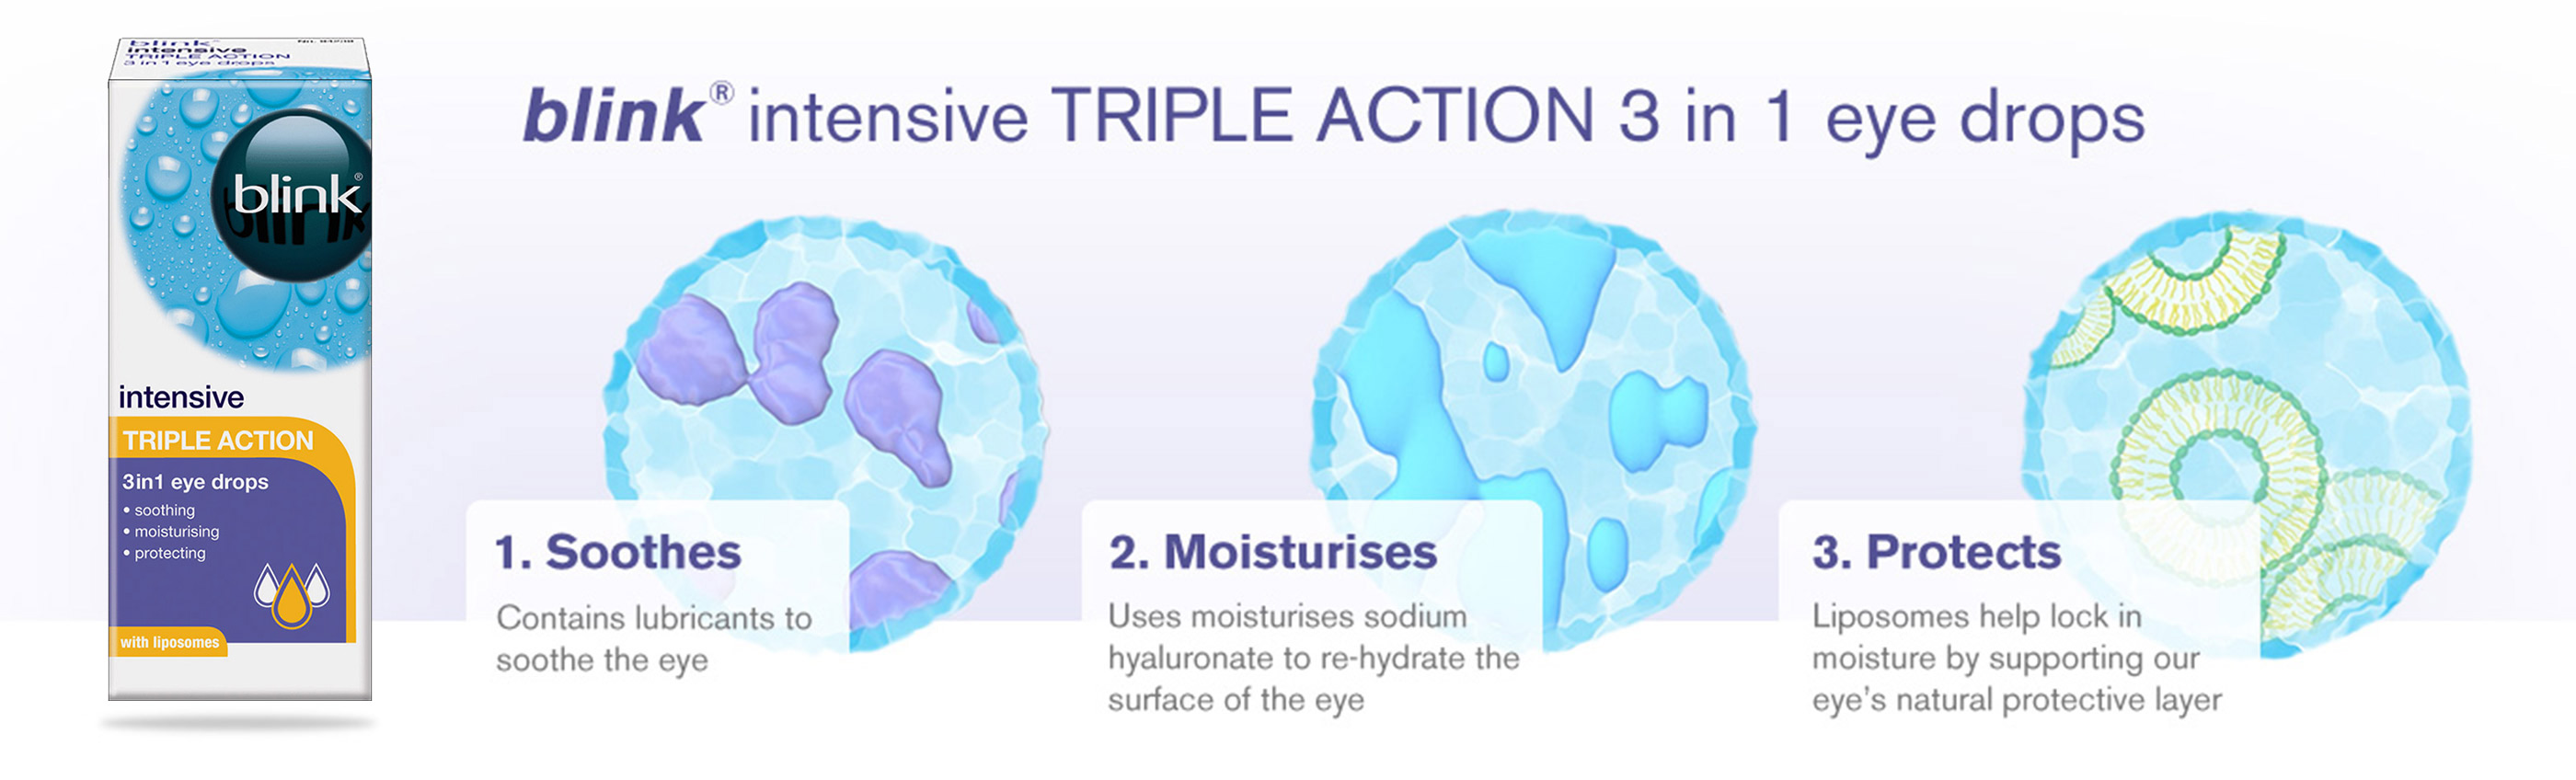 blink® intensive TRIPLE ACTION 3 in 1 eye drops